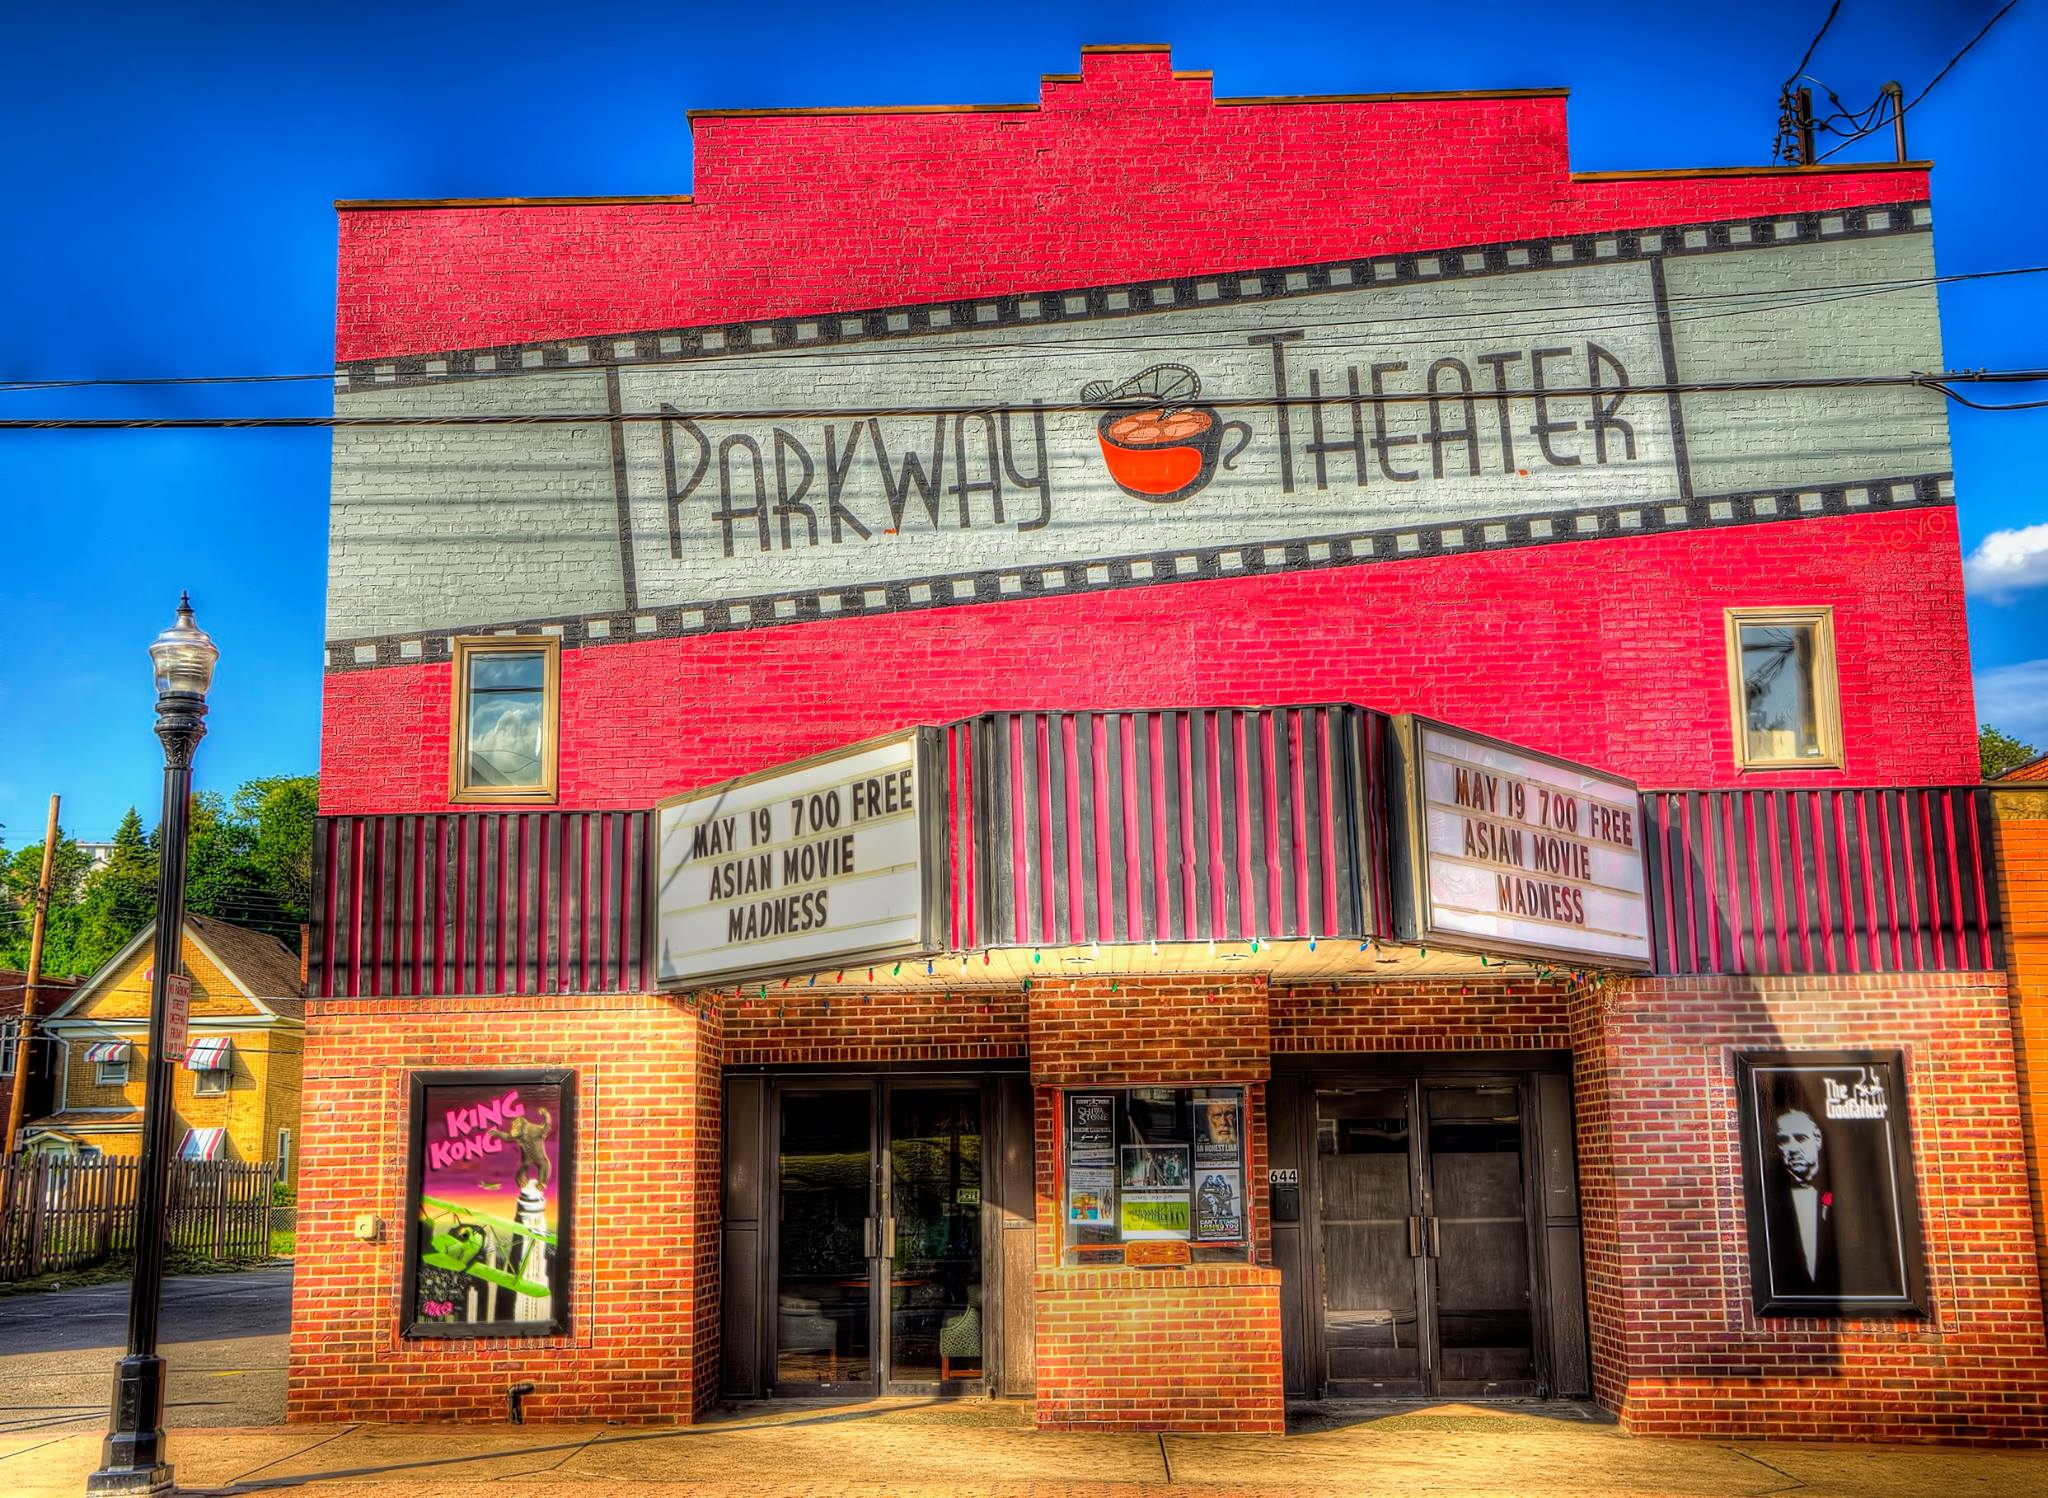 Parkway movie theaters